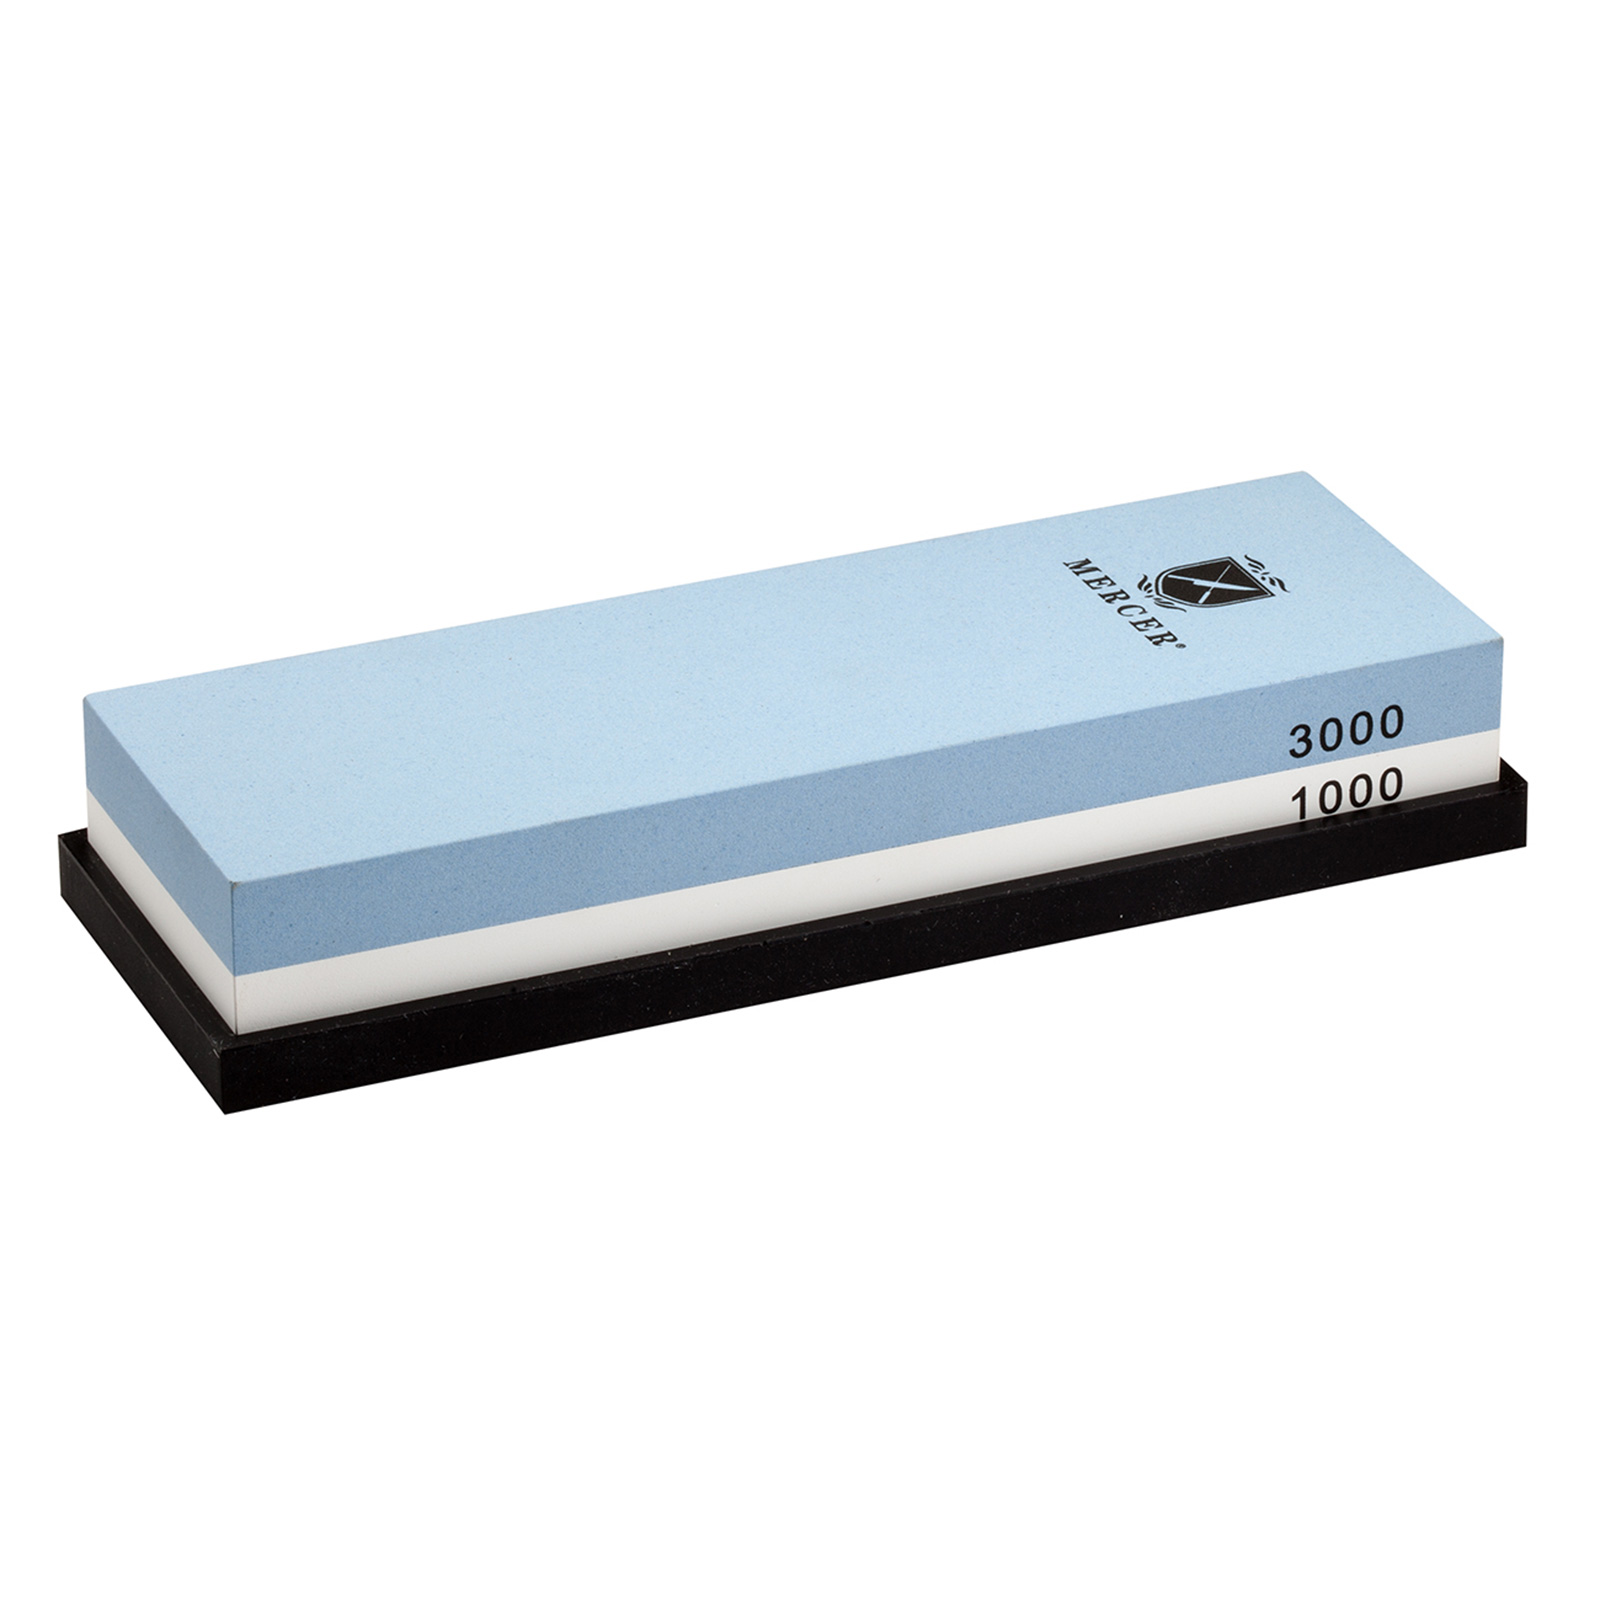 Mercer Culinary M15952 knife, sharpening stone